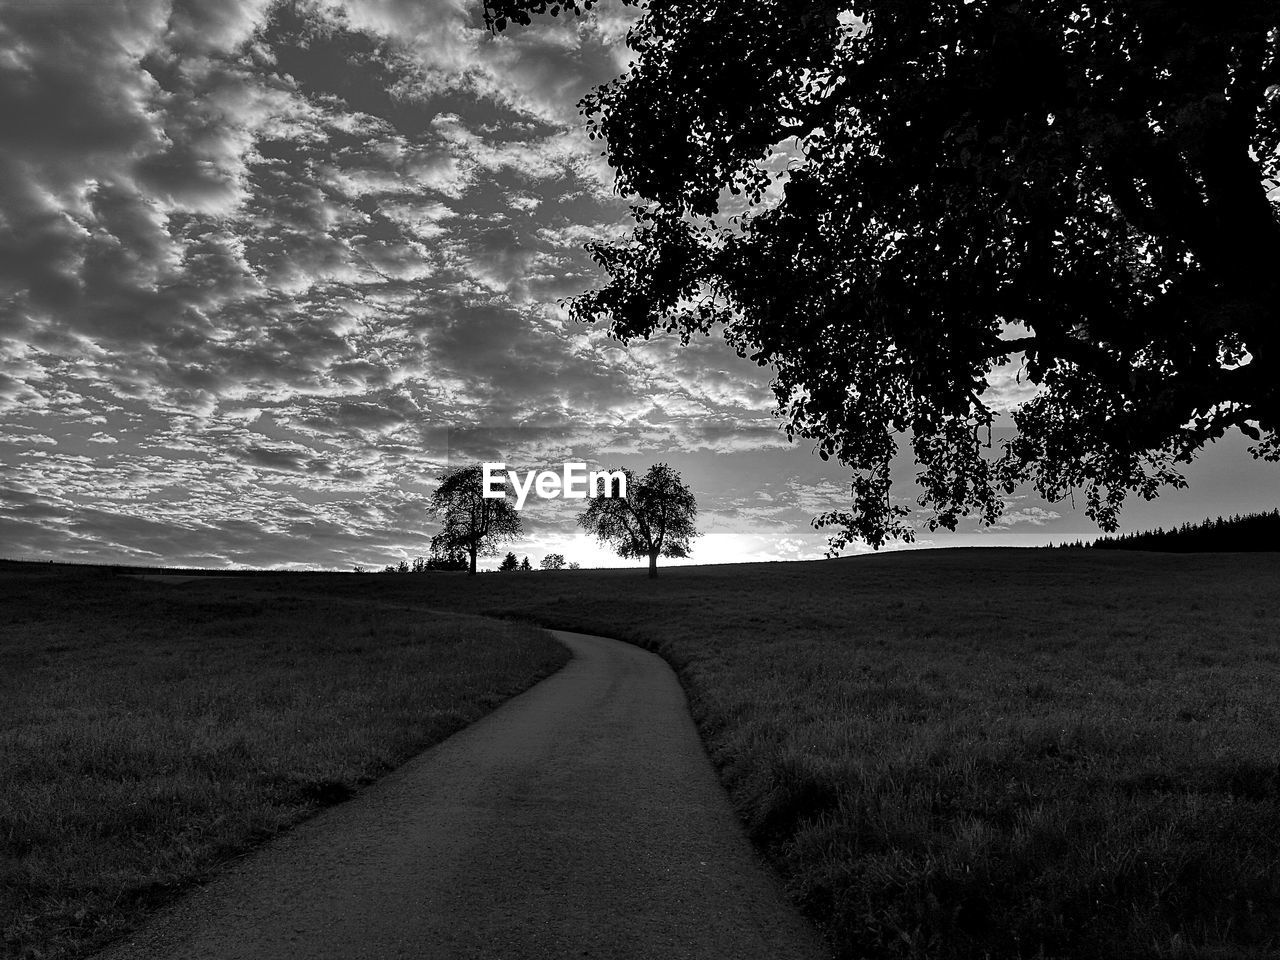 plant, sky, tree, cloud - sky, direction, the way forward, field, nature, beauty in nature, landscape, land, grass, scenics - nature, environment, tranquil scene, growth, road, tranquility, transportation, no people, diminishing perspective, outdoors, long